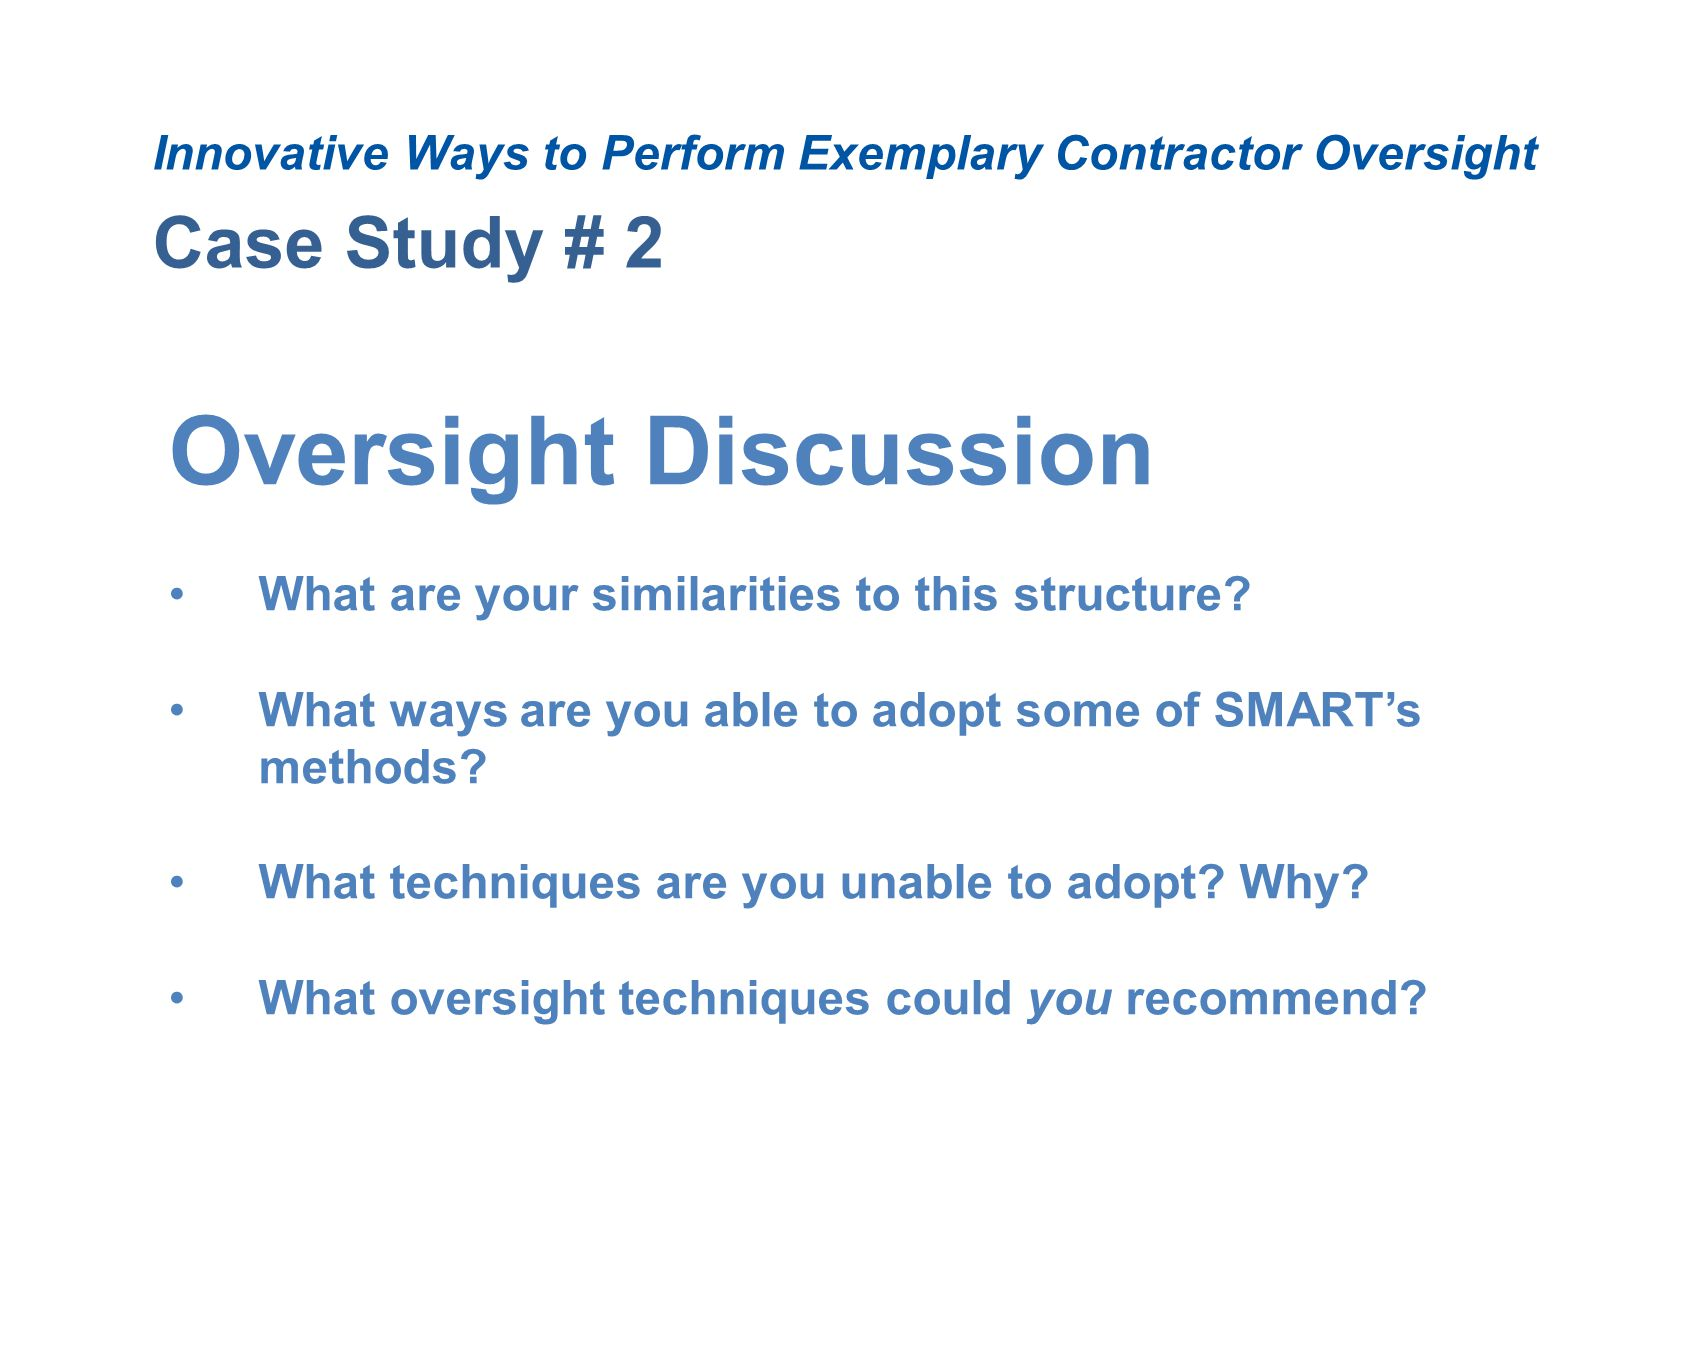 Case Study # 2 Innovative Ways to Perform Exemplary Contractor Oversight Oversight Discussion What are your similarities to this structure? What ways